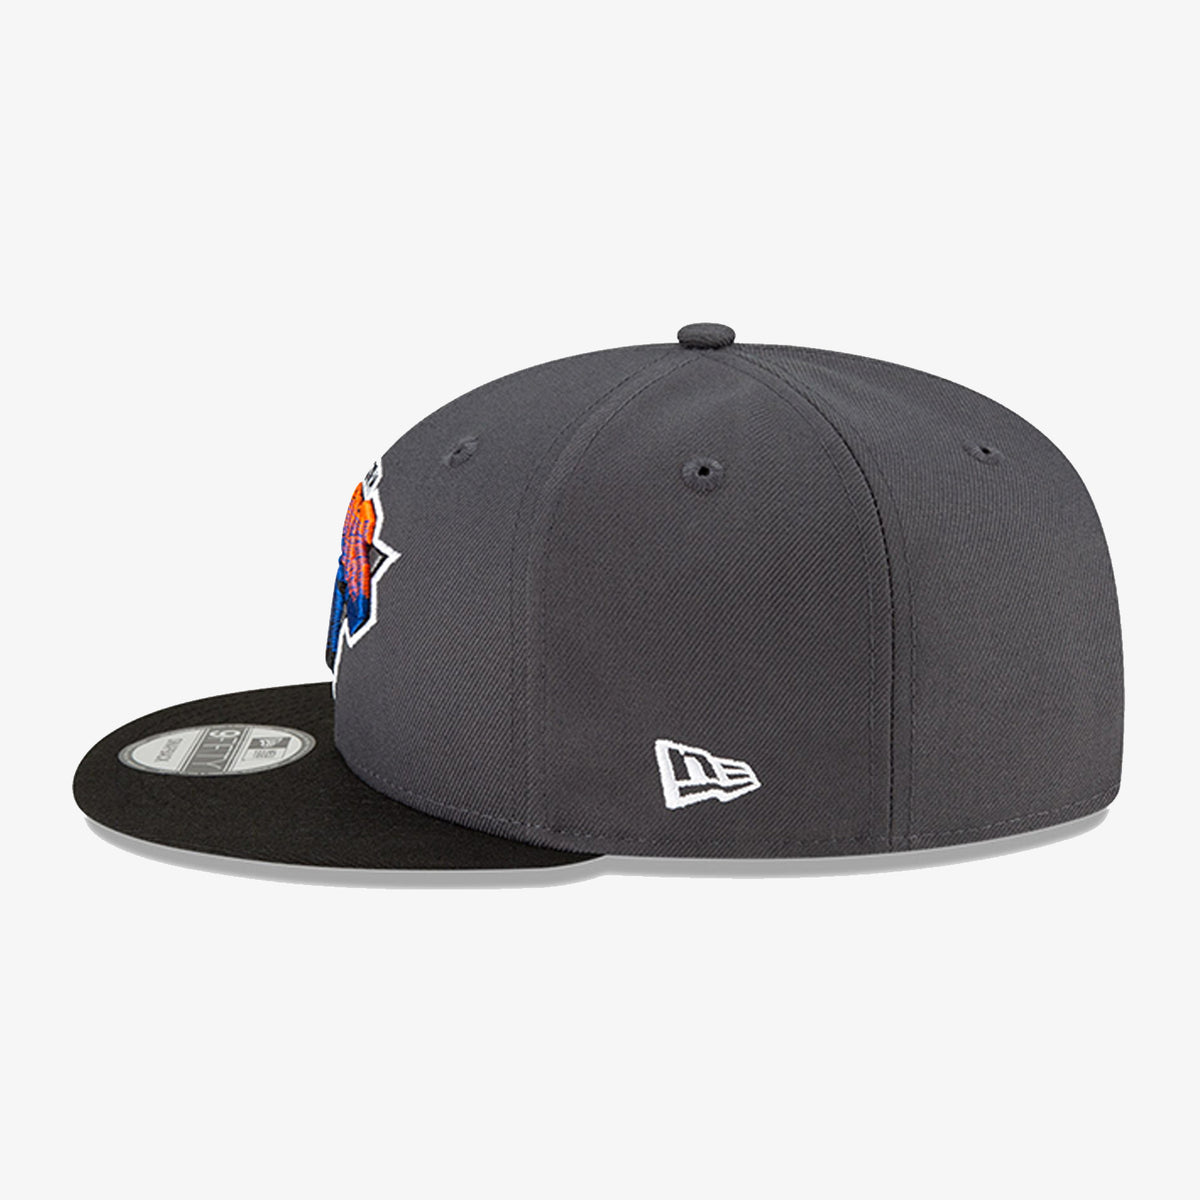 New York Knicks City Edition 950 Snapback - Grey